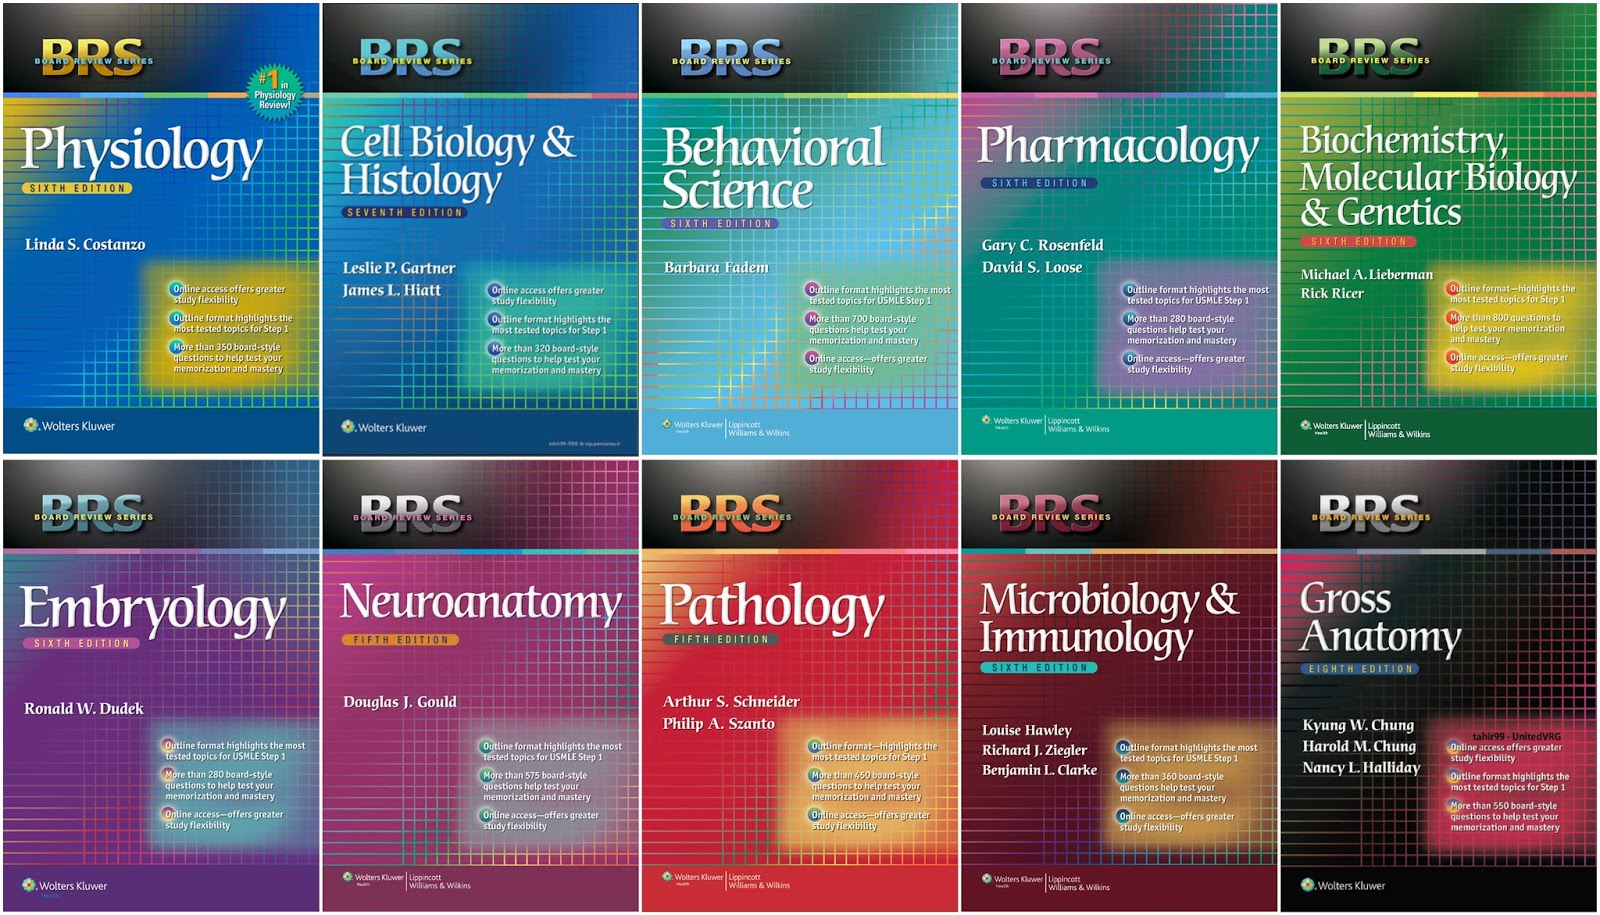 Brs microbiology and immunology board review series free download ...